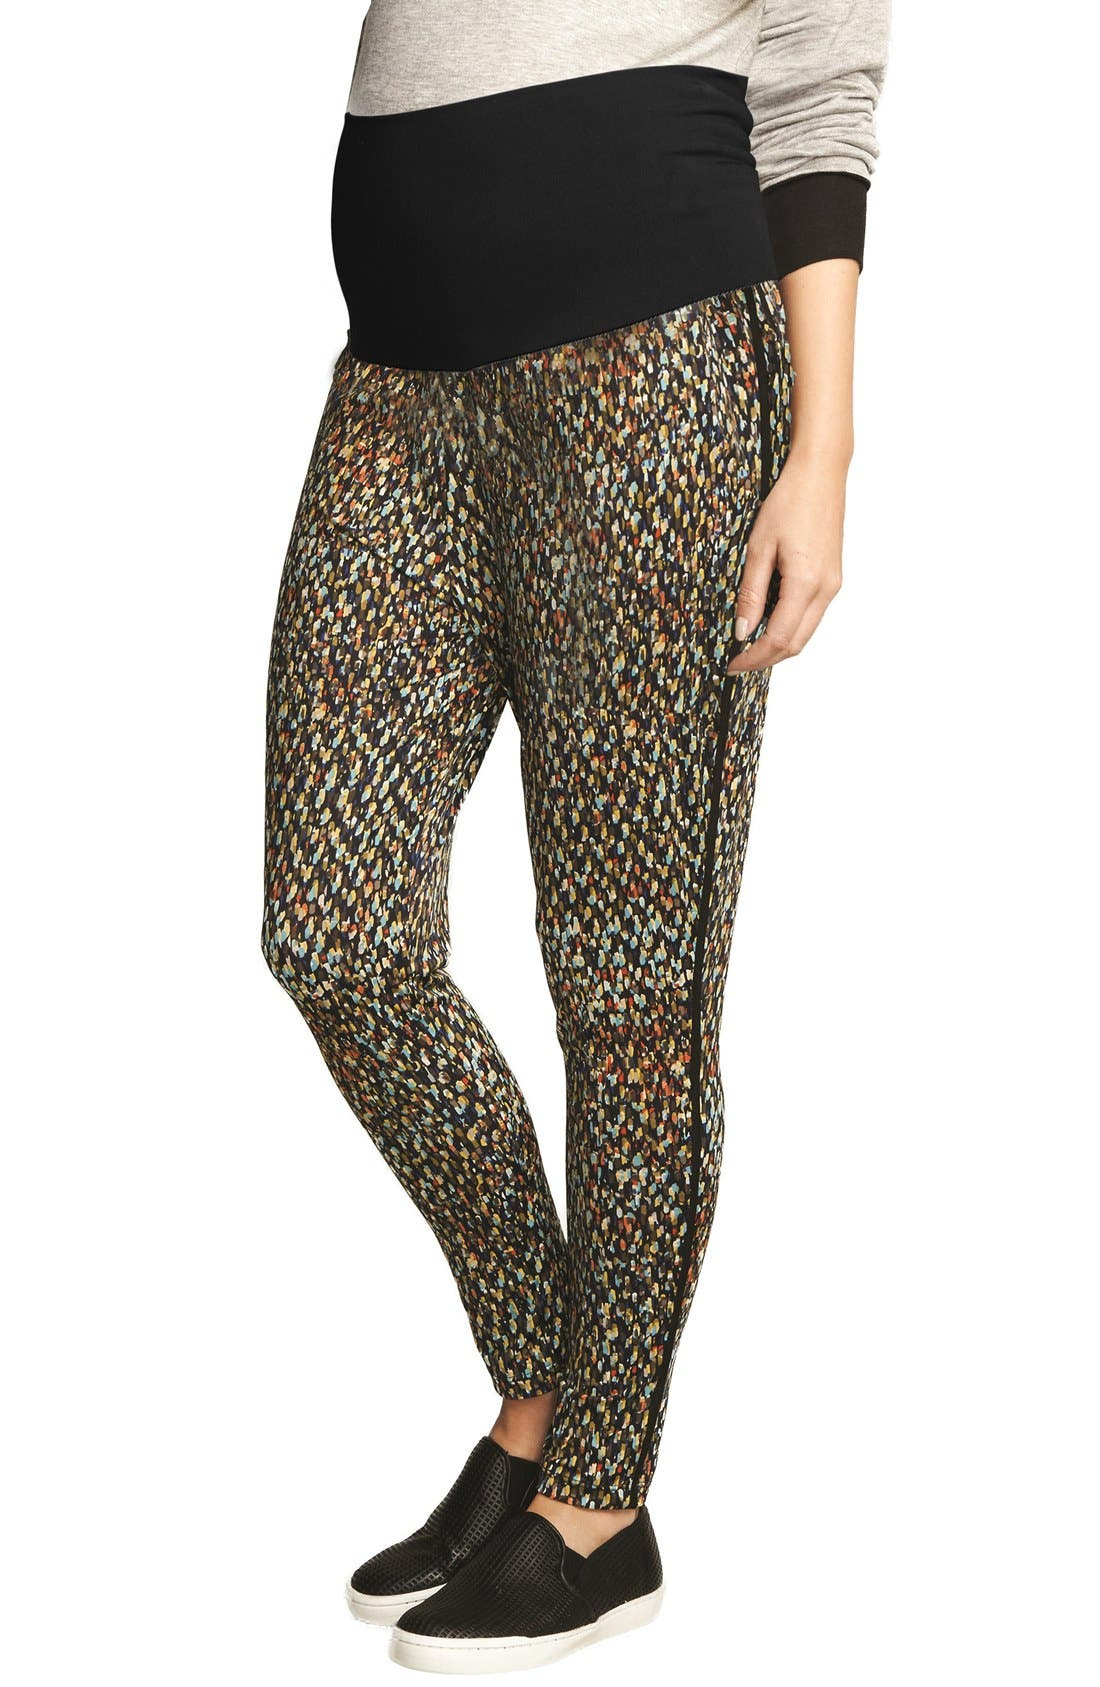 Alternate Image 1 Selected - The Urban Ma Print Maternity Pants